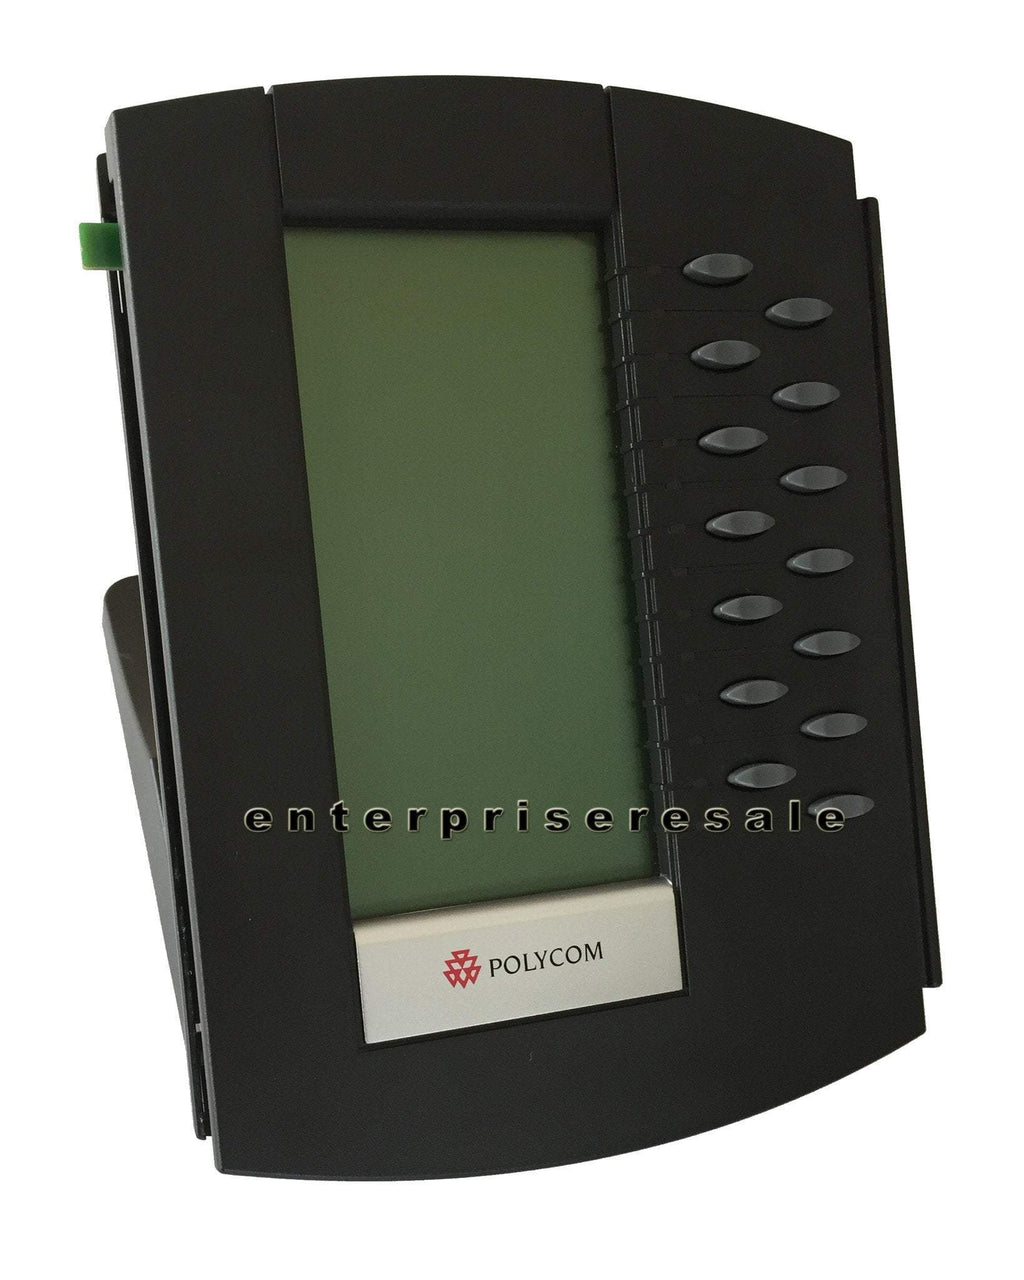 Polycom SoundPoint IP BEM (2201-12750-001) Sidecar IP650 Grade C - Enterprise Resale